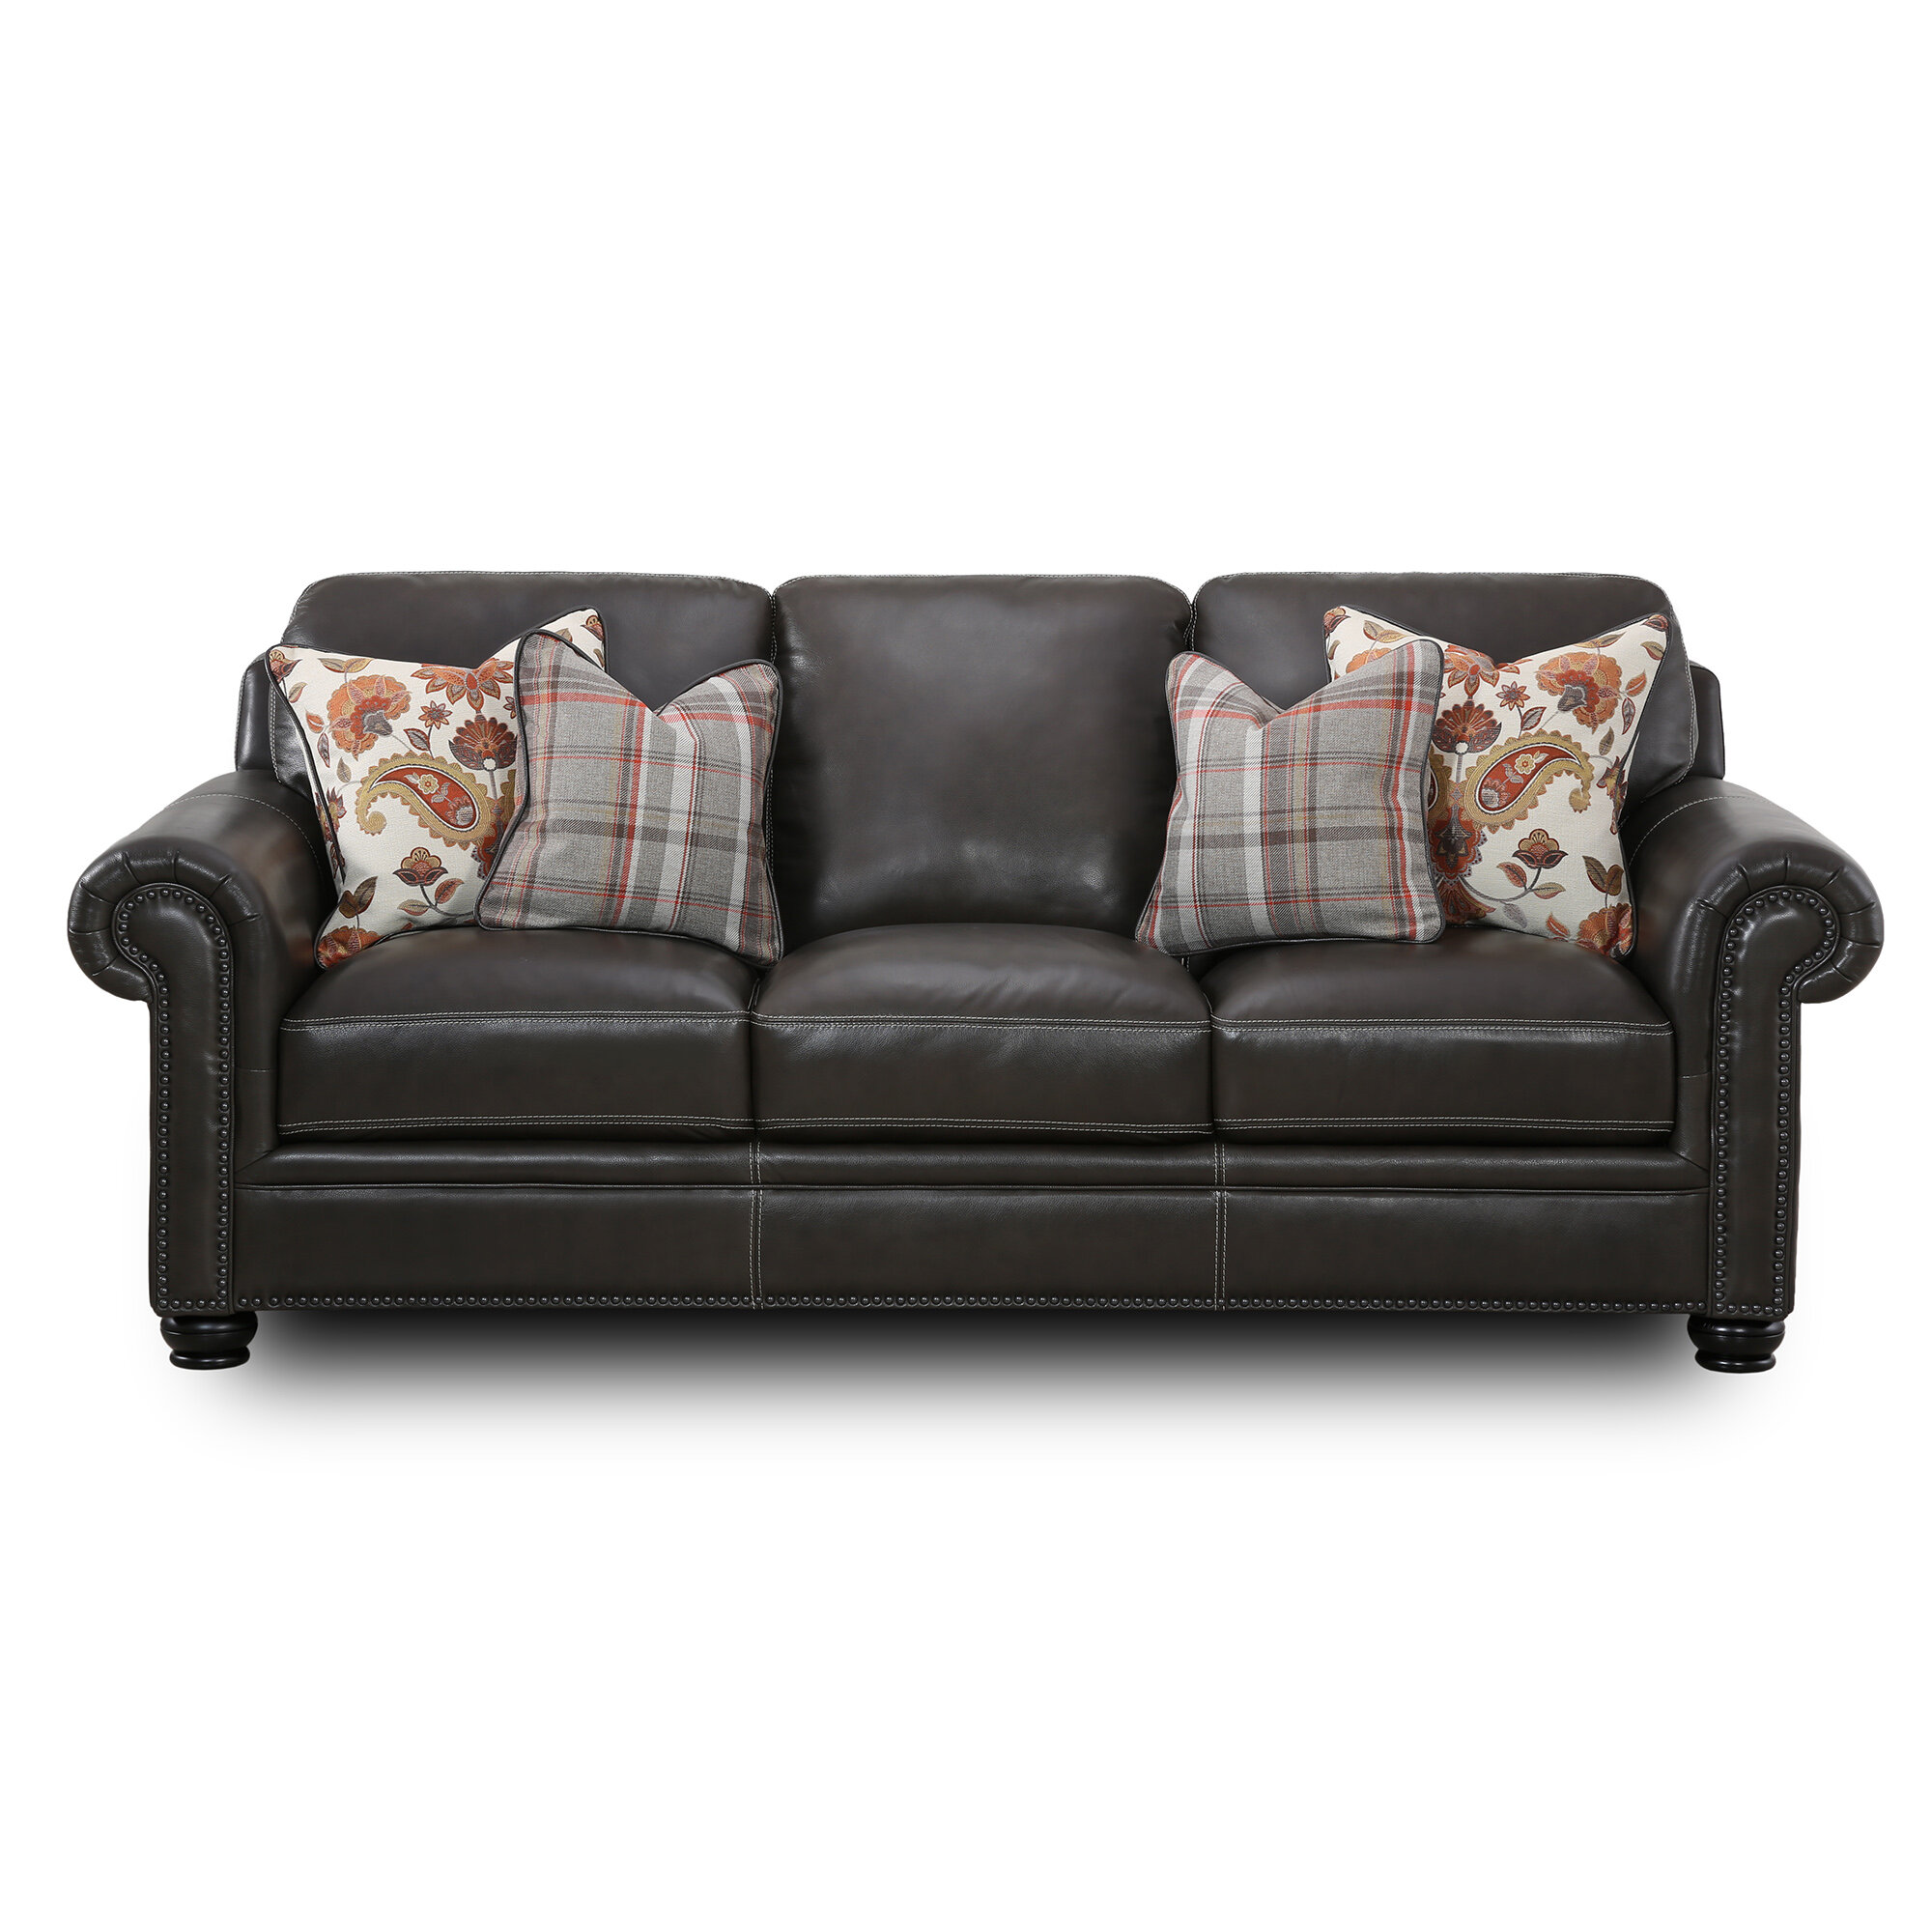 Darby Home Co Stegall 89 Wide Rolled Arm Sofa Reviews Wayfair